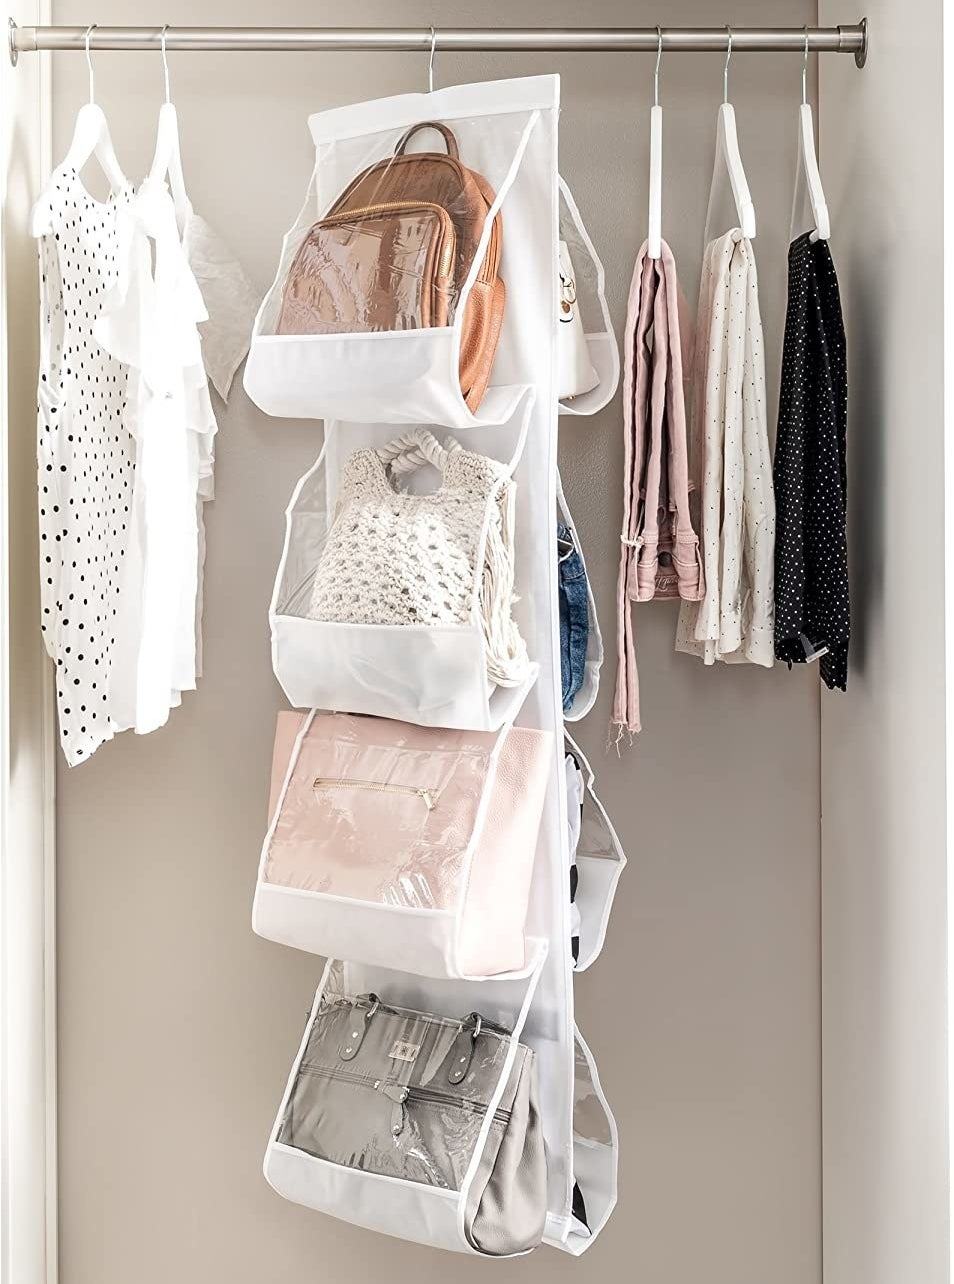 Eight handbags inside the handbag organizer in a closet